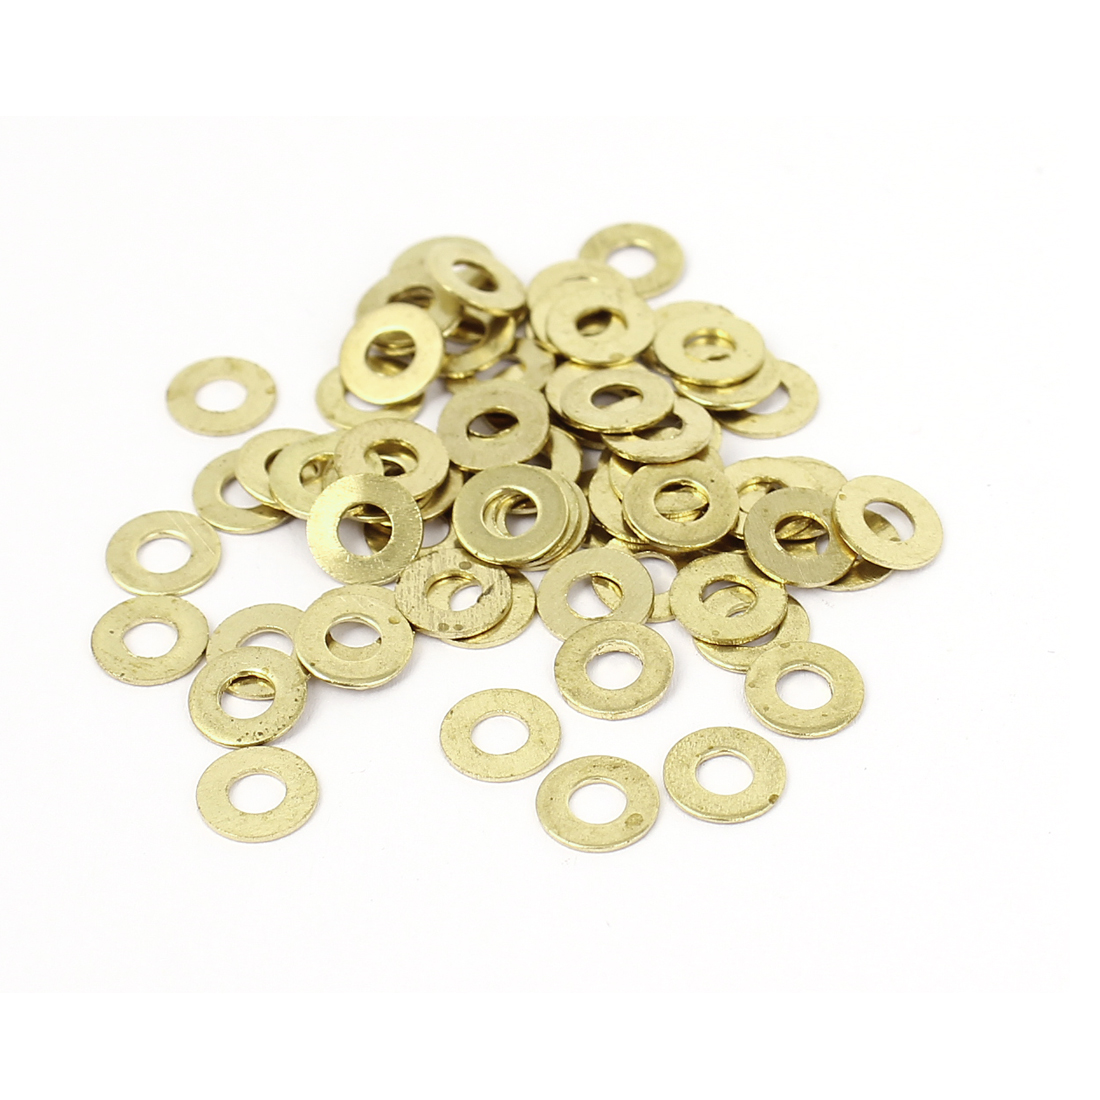 3mmx7mmx0.5mm Gold Tone Round Flat Metal Washers Spacer Fastener 70pcs